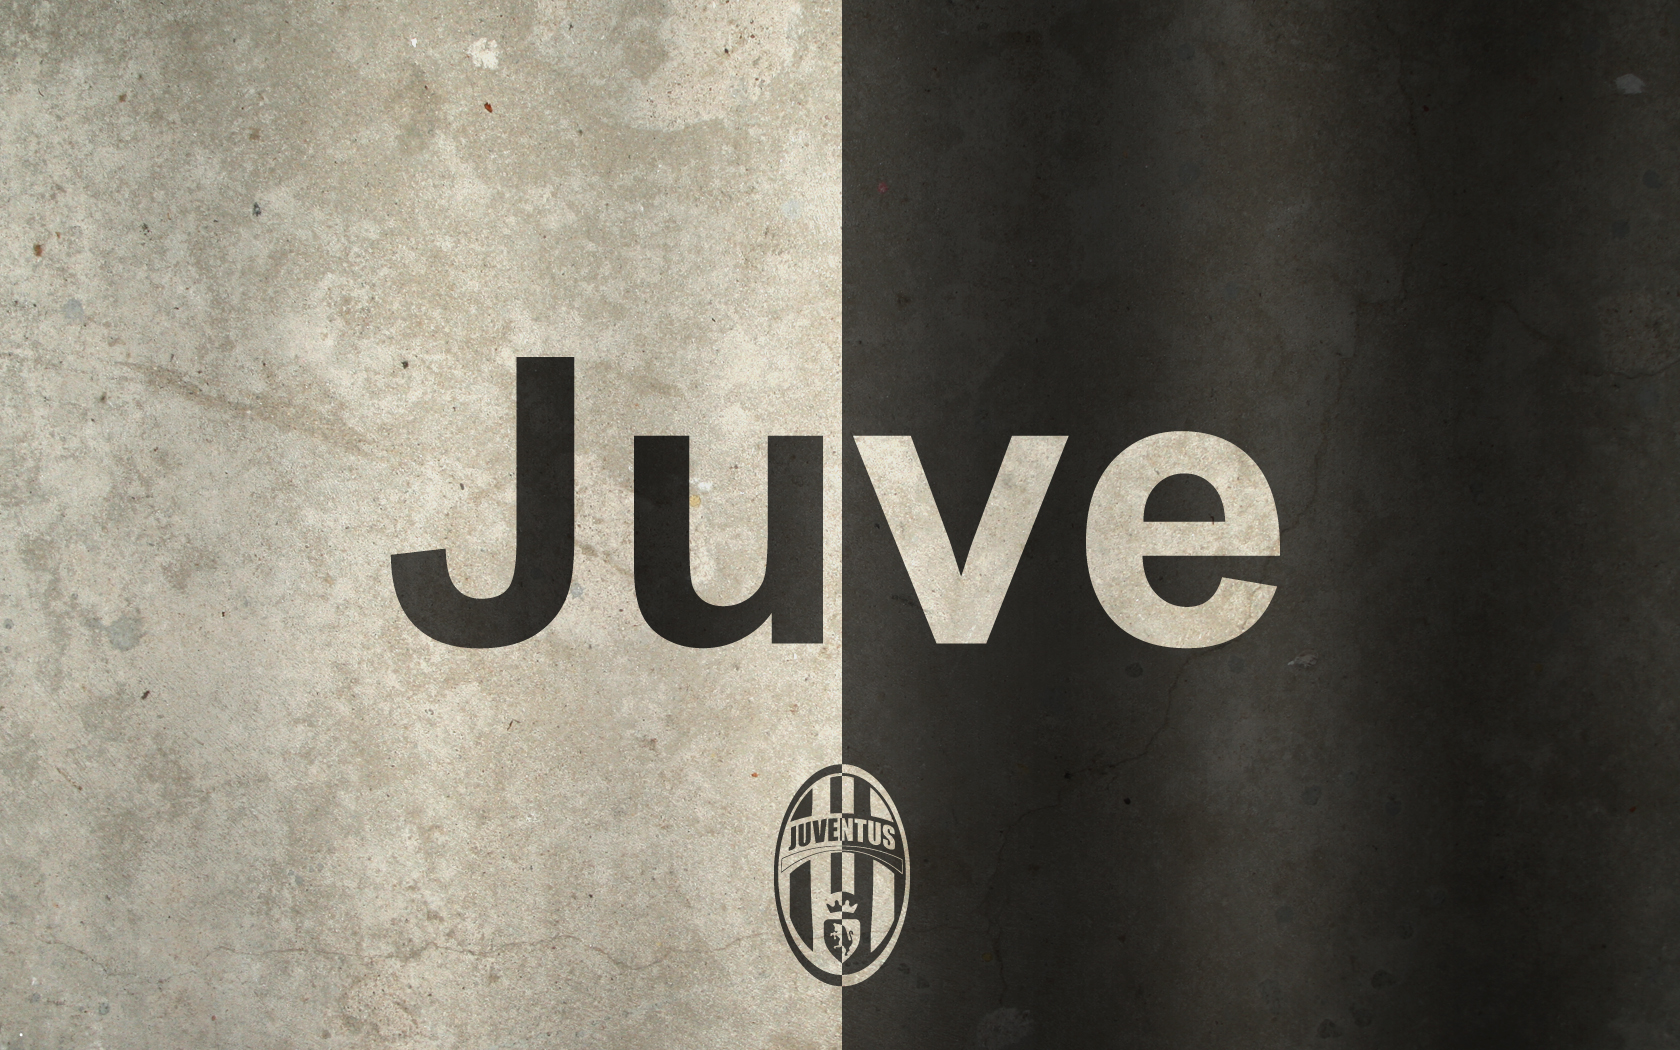 77 Juventus Logo Wallpaper On Wallpapersafari